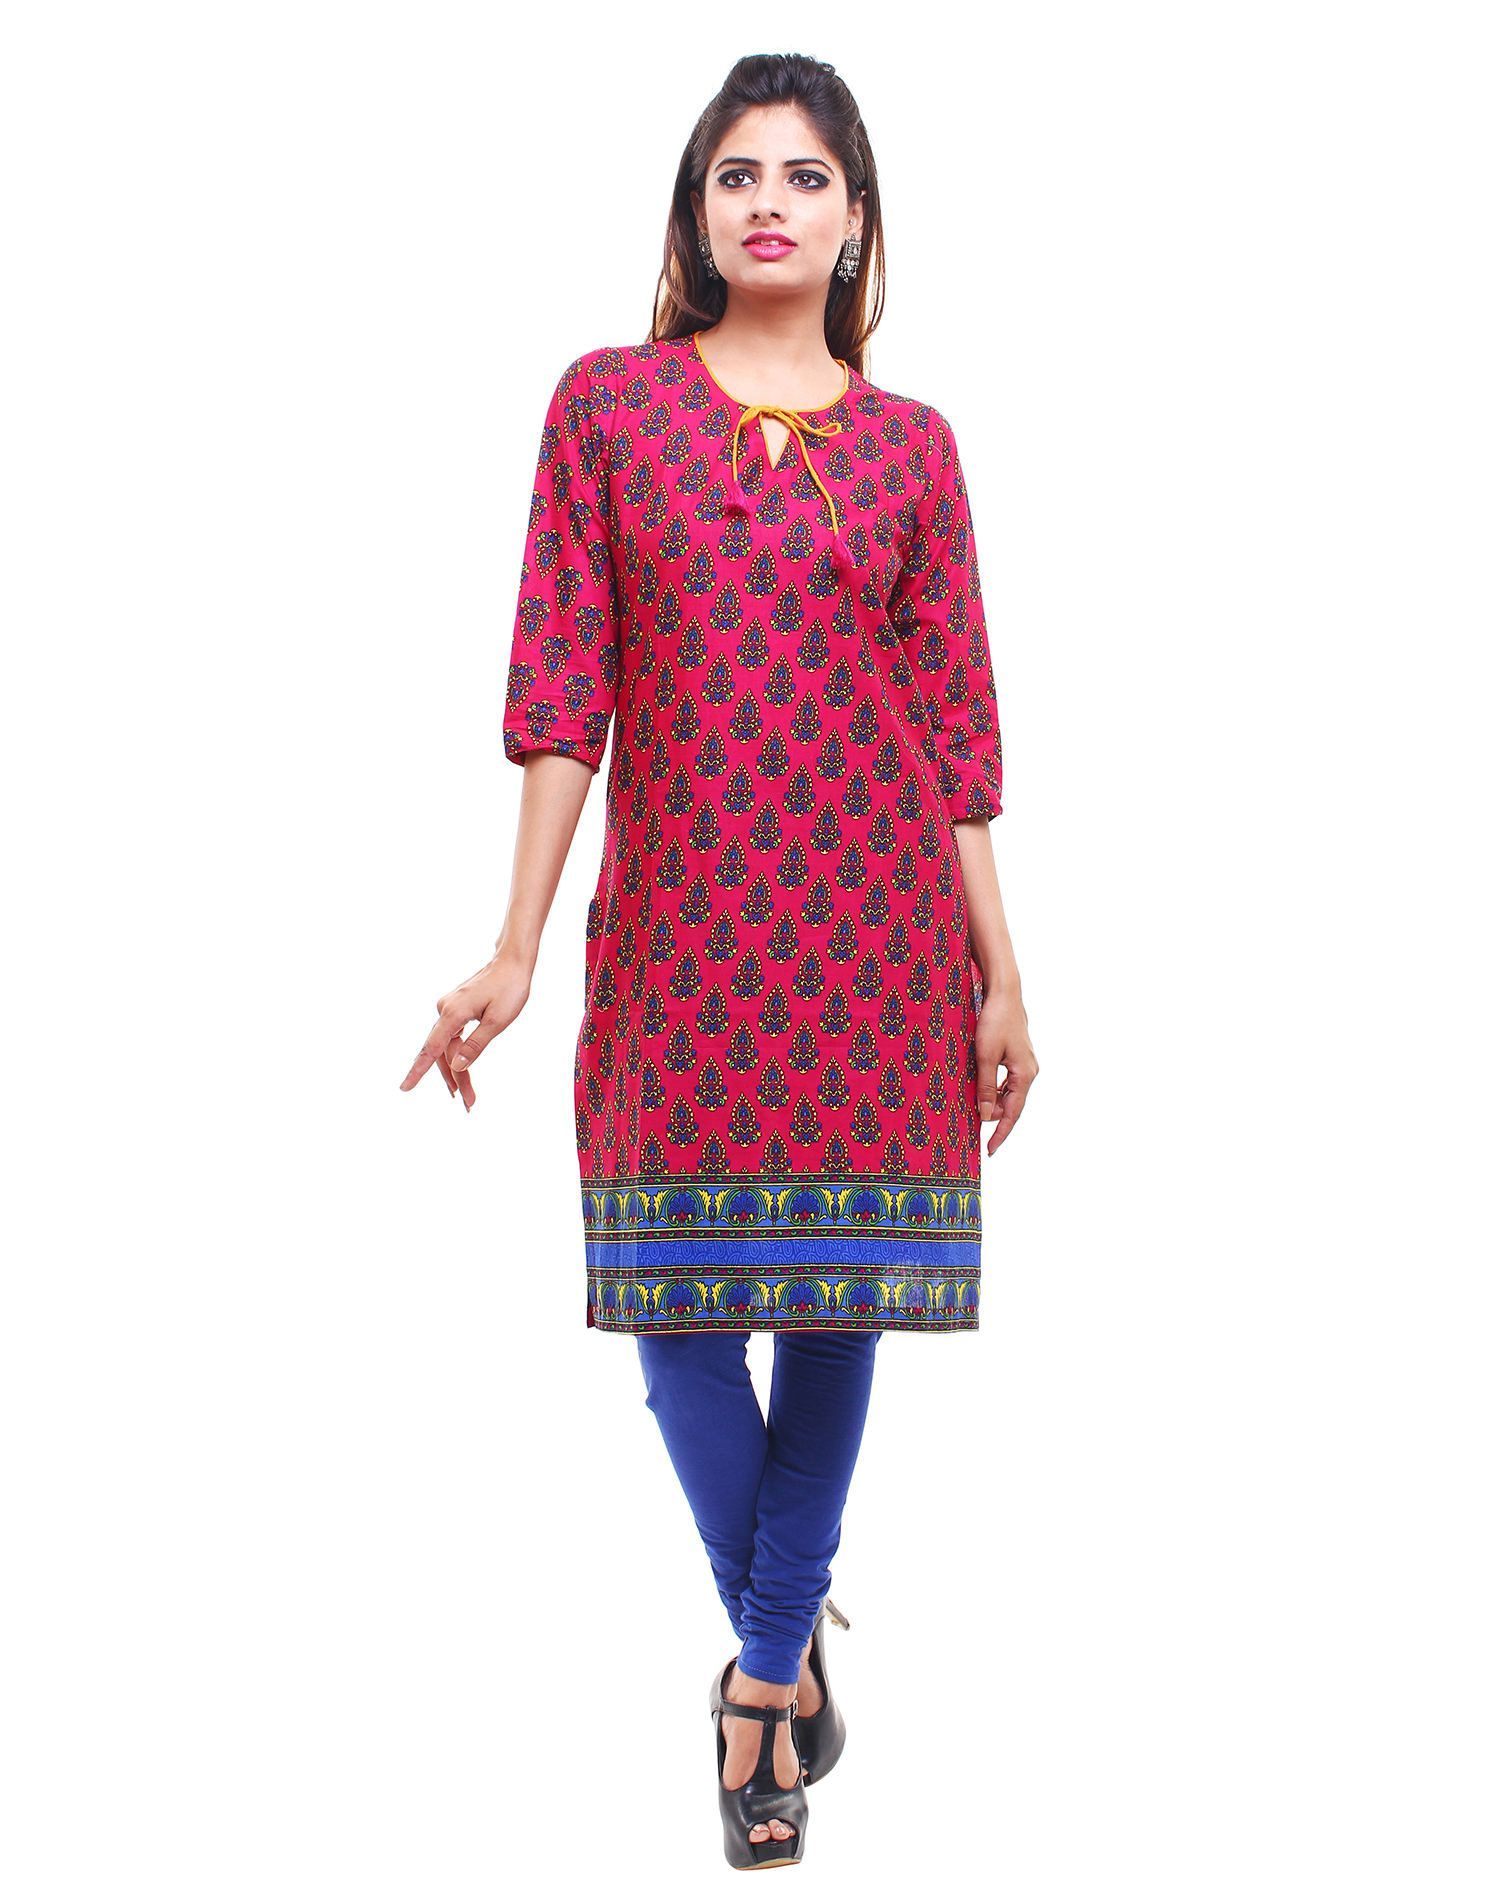 Buy Pink Gloi Pink Kurti Online For Women At Flash Sale | Styletag, India - Styletag